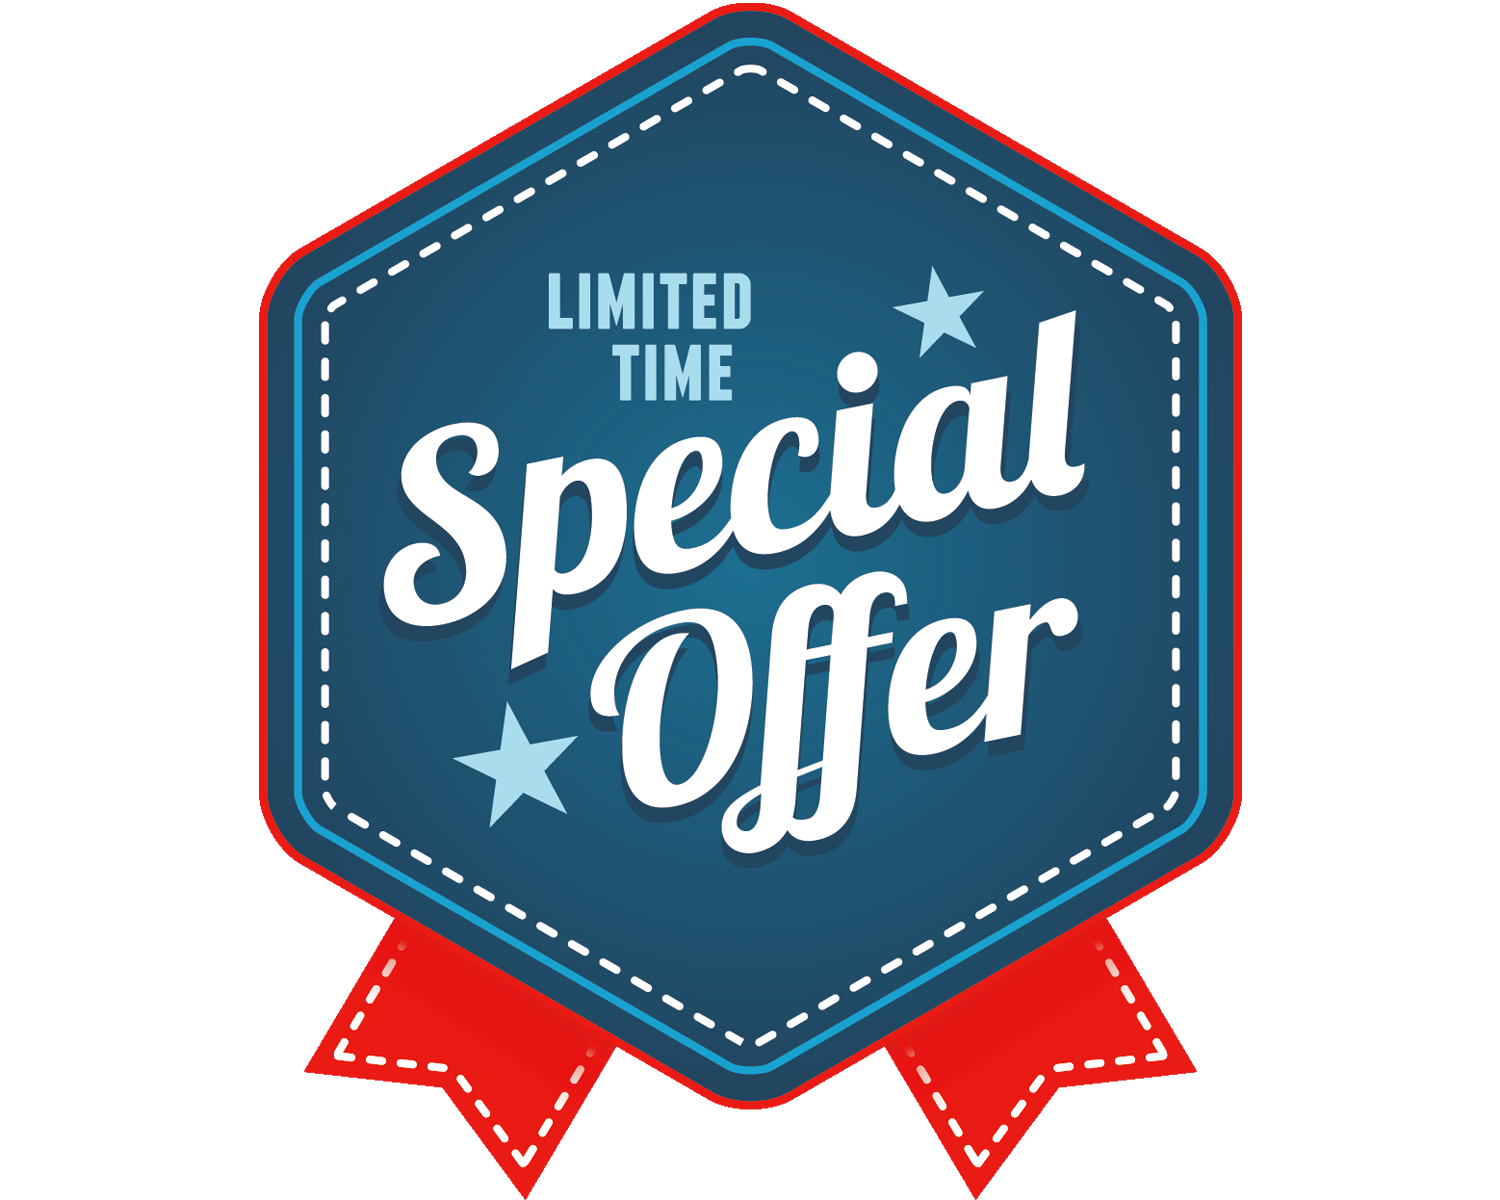 Limited Time Special Offer Icon